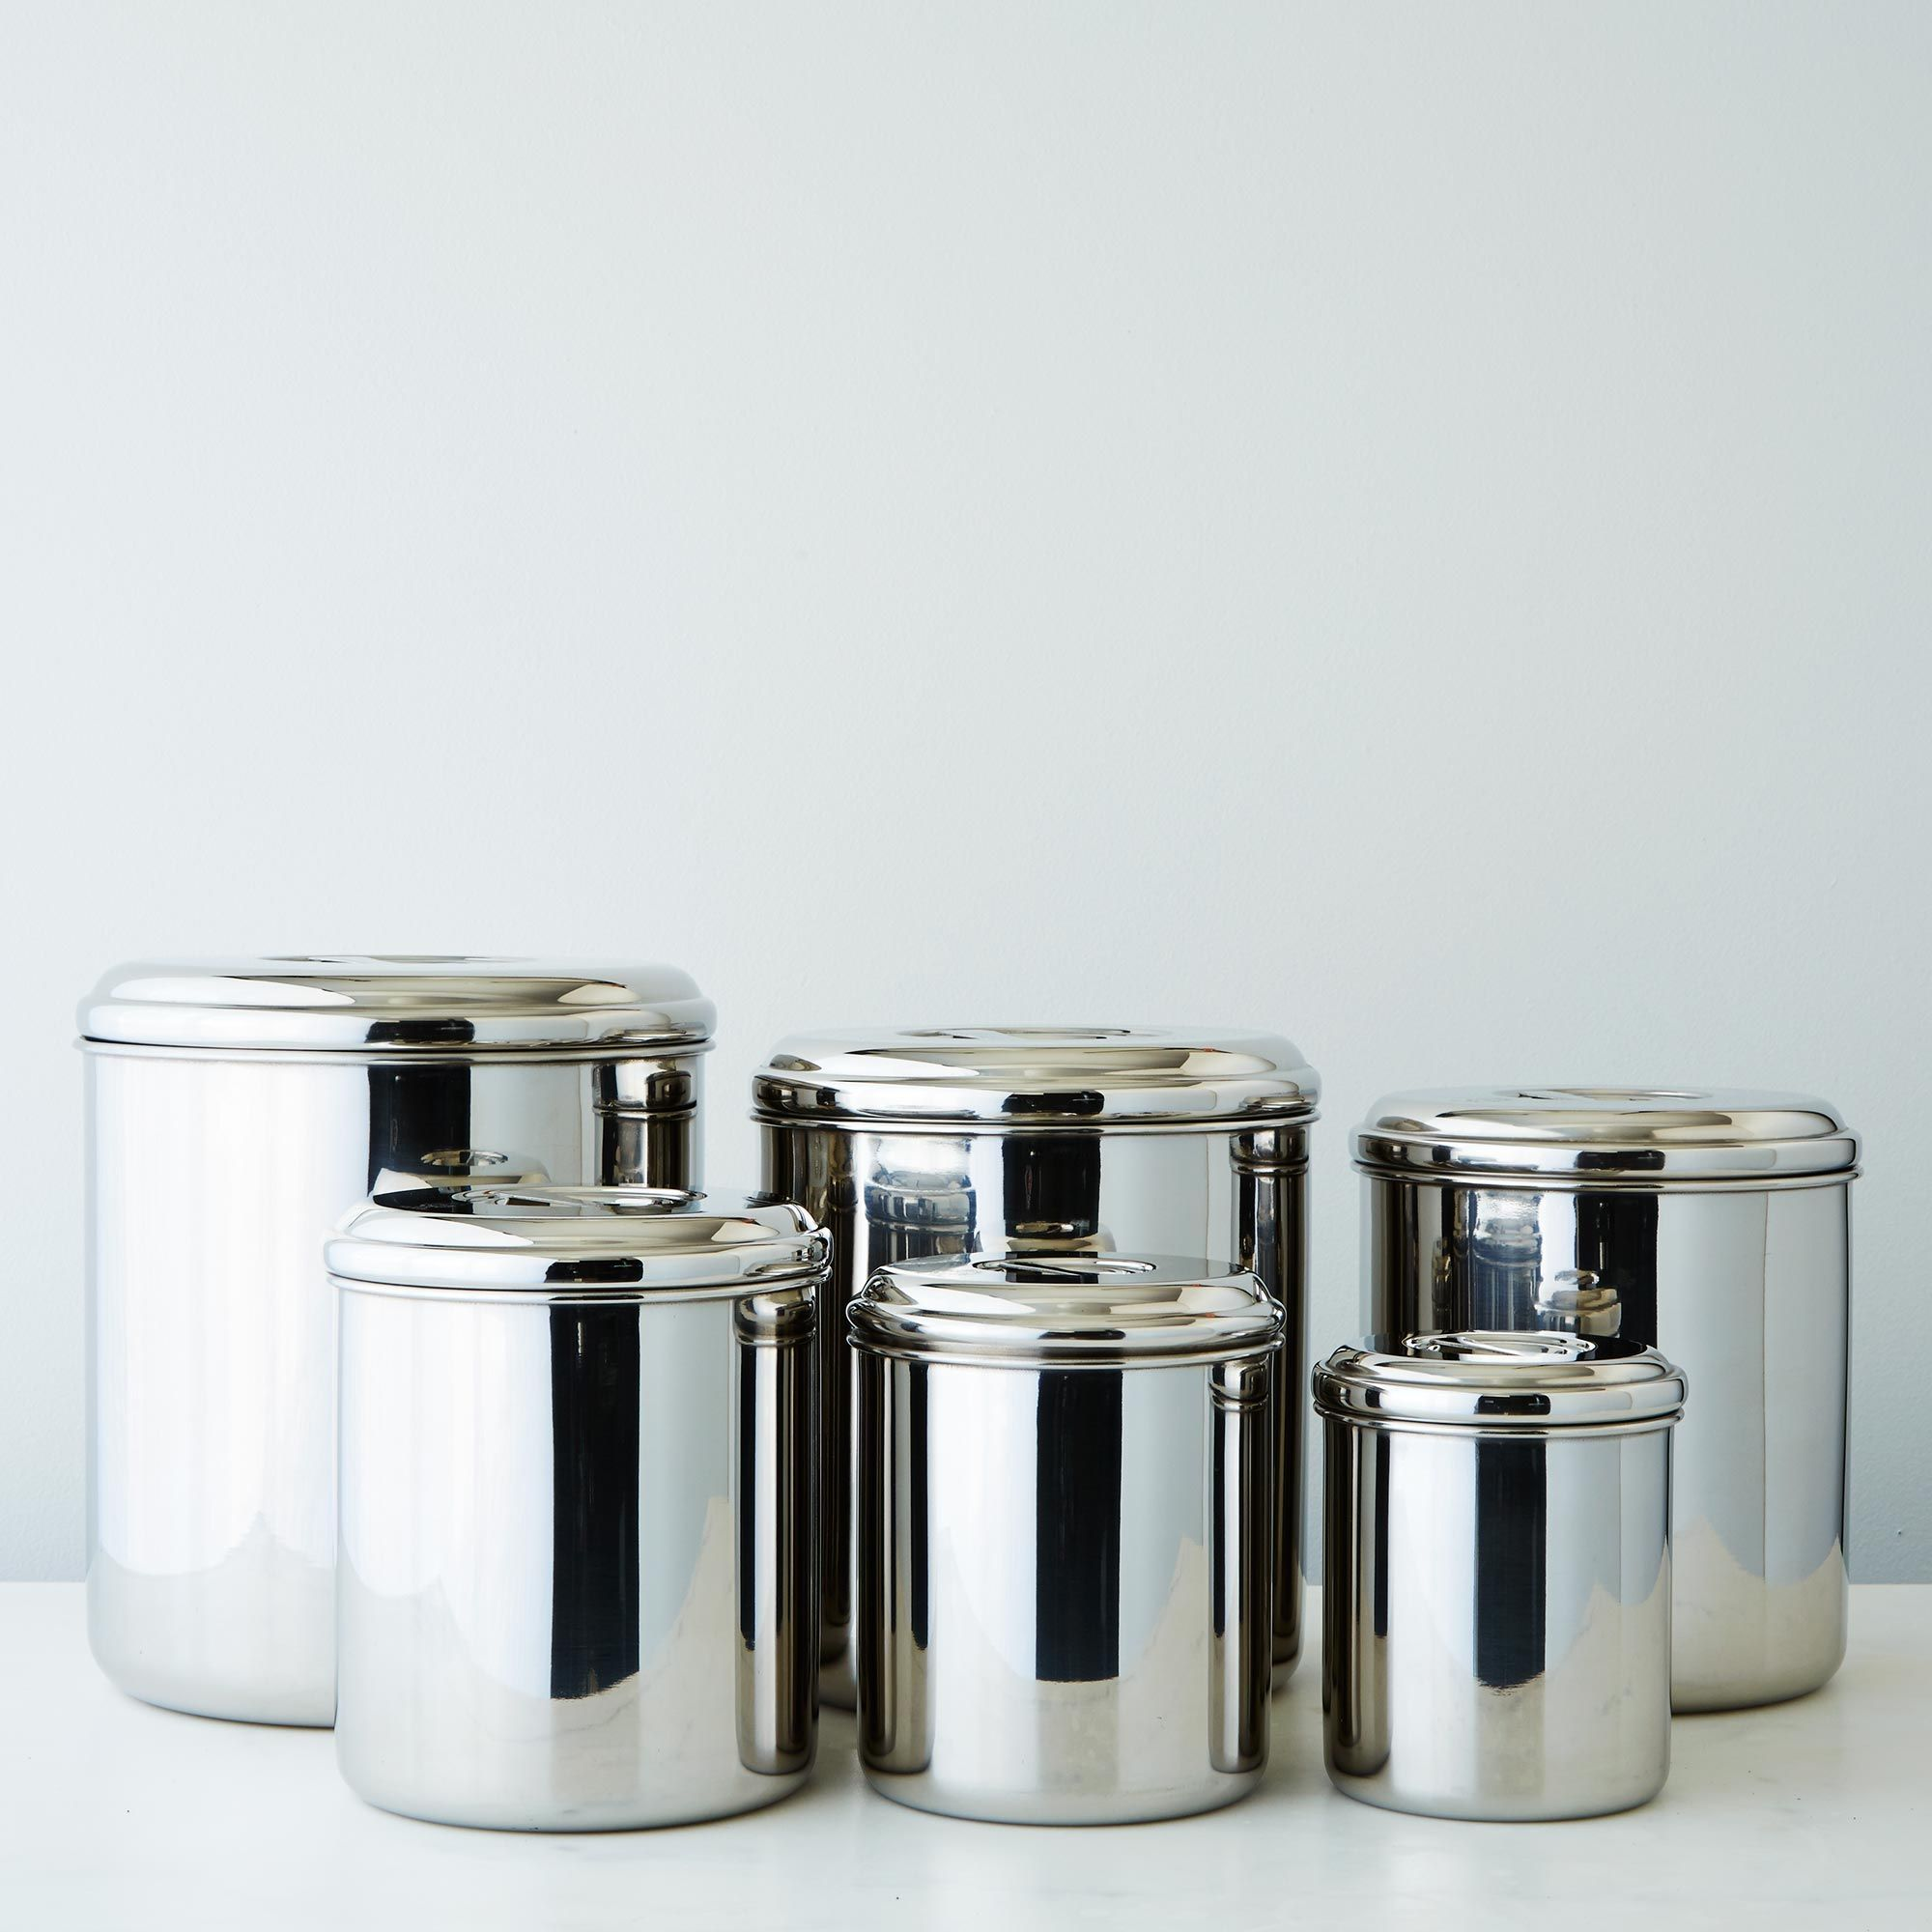 Stainless steel storage containers for kitchen - Stainless Steel Canisters Set Of 6